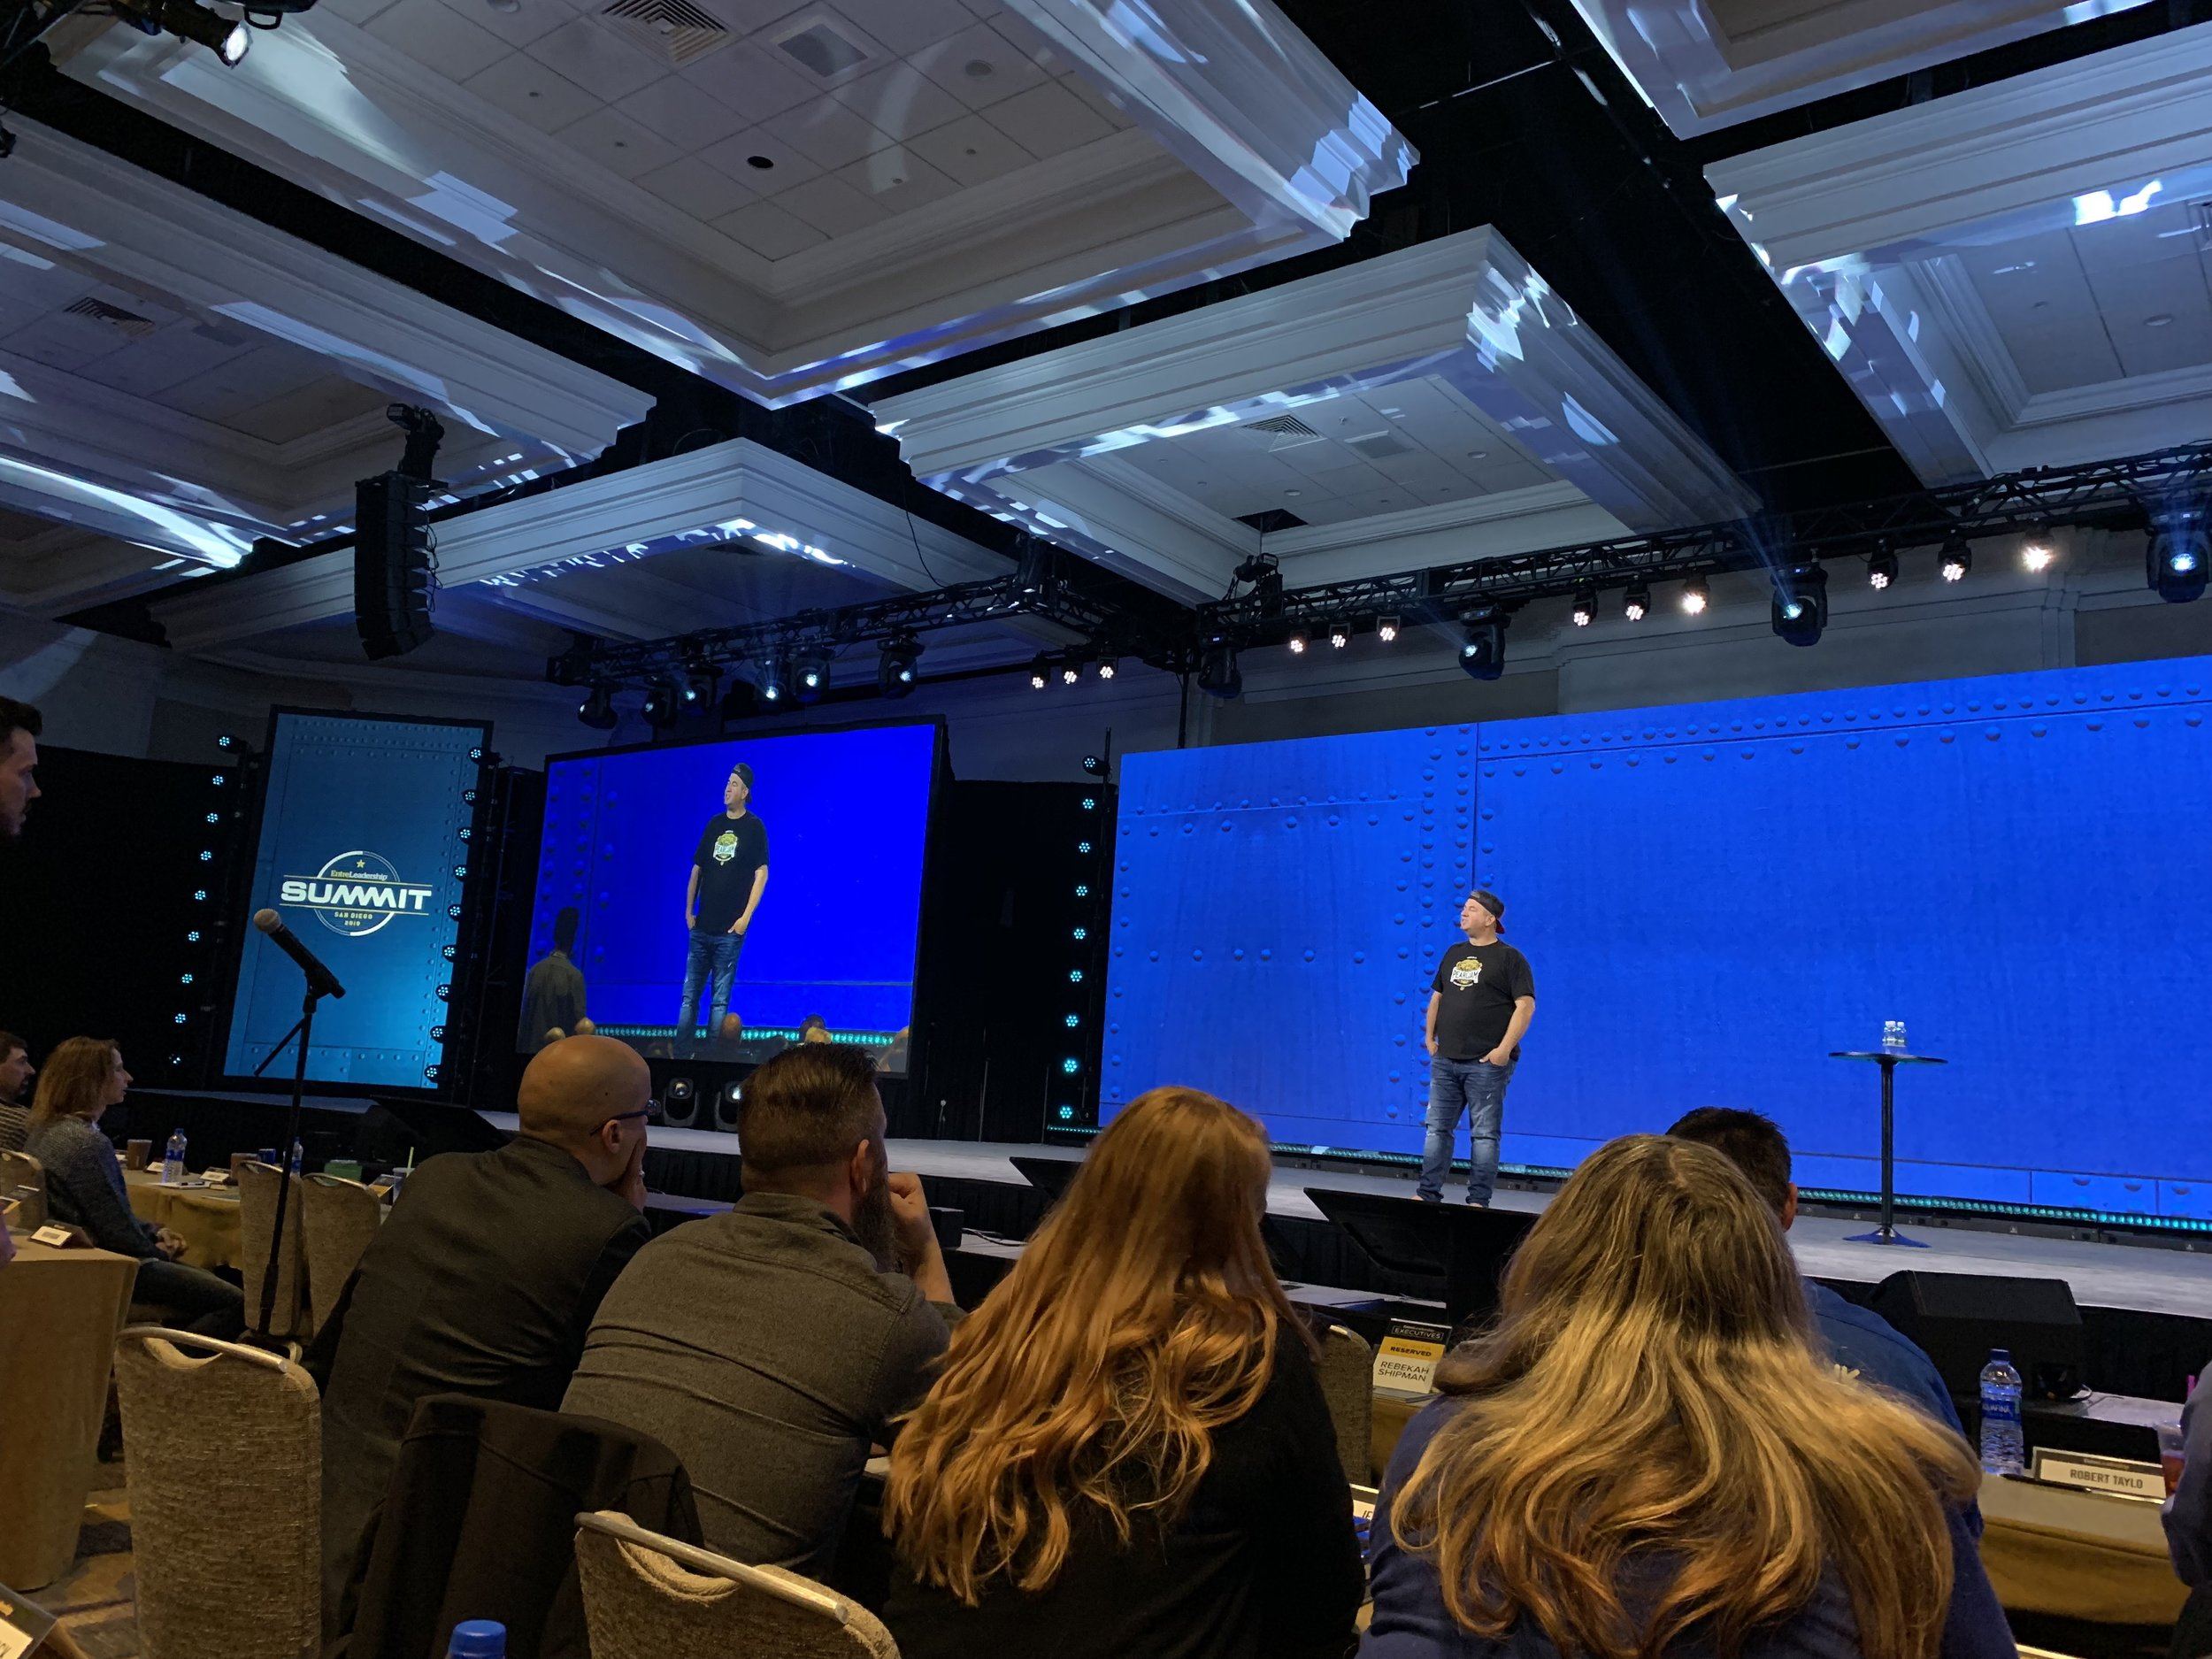 Trav Boersma on the Entreleadership stage presenting all about Dutch Bros., the culture, and it's history.